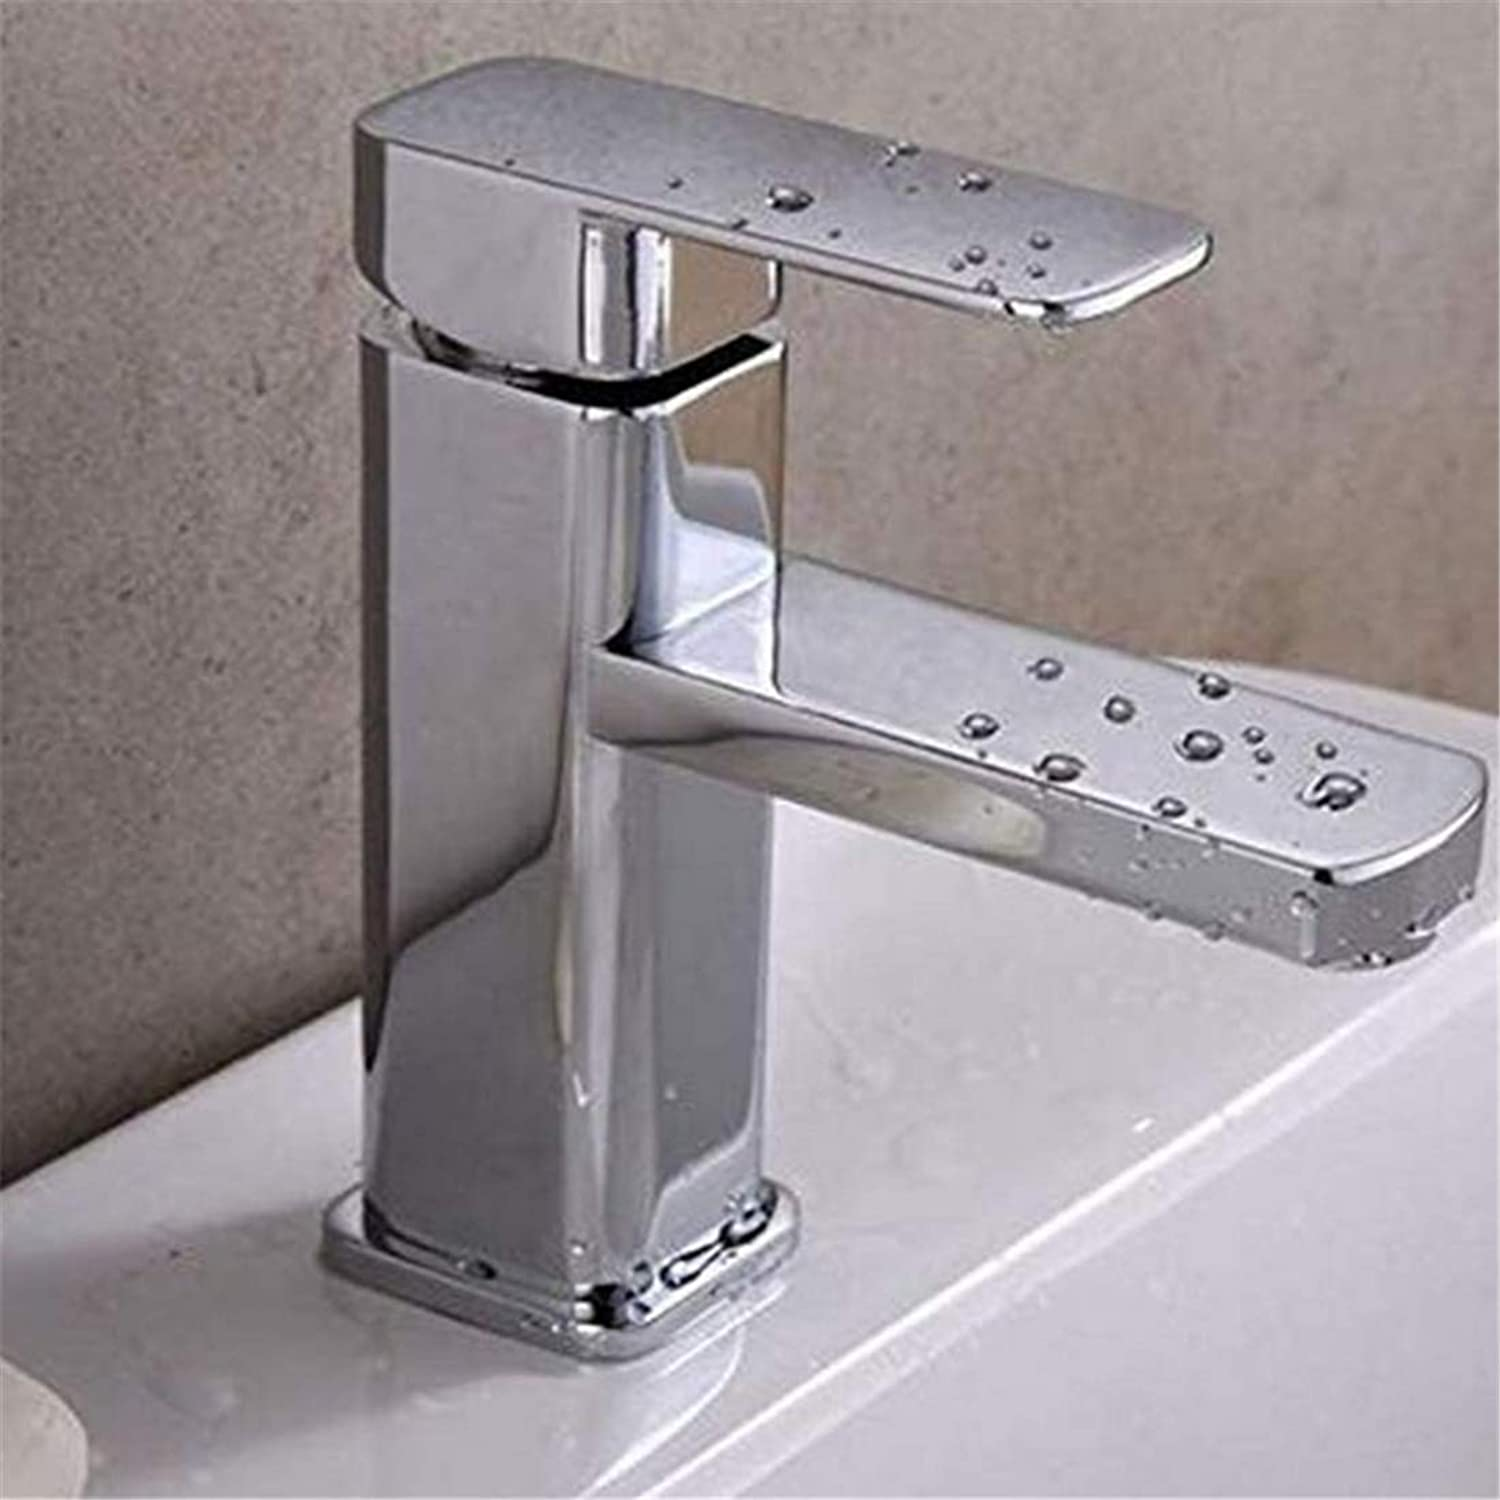 Miscelatore Cucinasink Faucet Solid Brass Hot and Cold Water Kitchen Sink Basin Mixer Tap